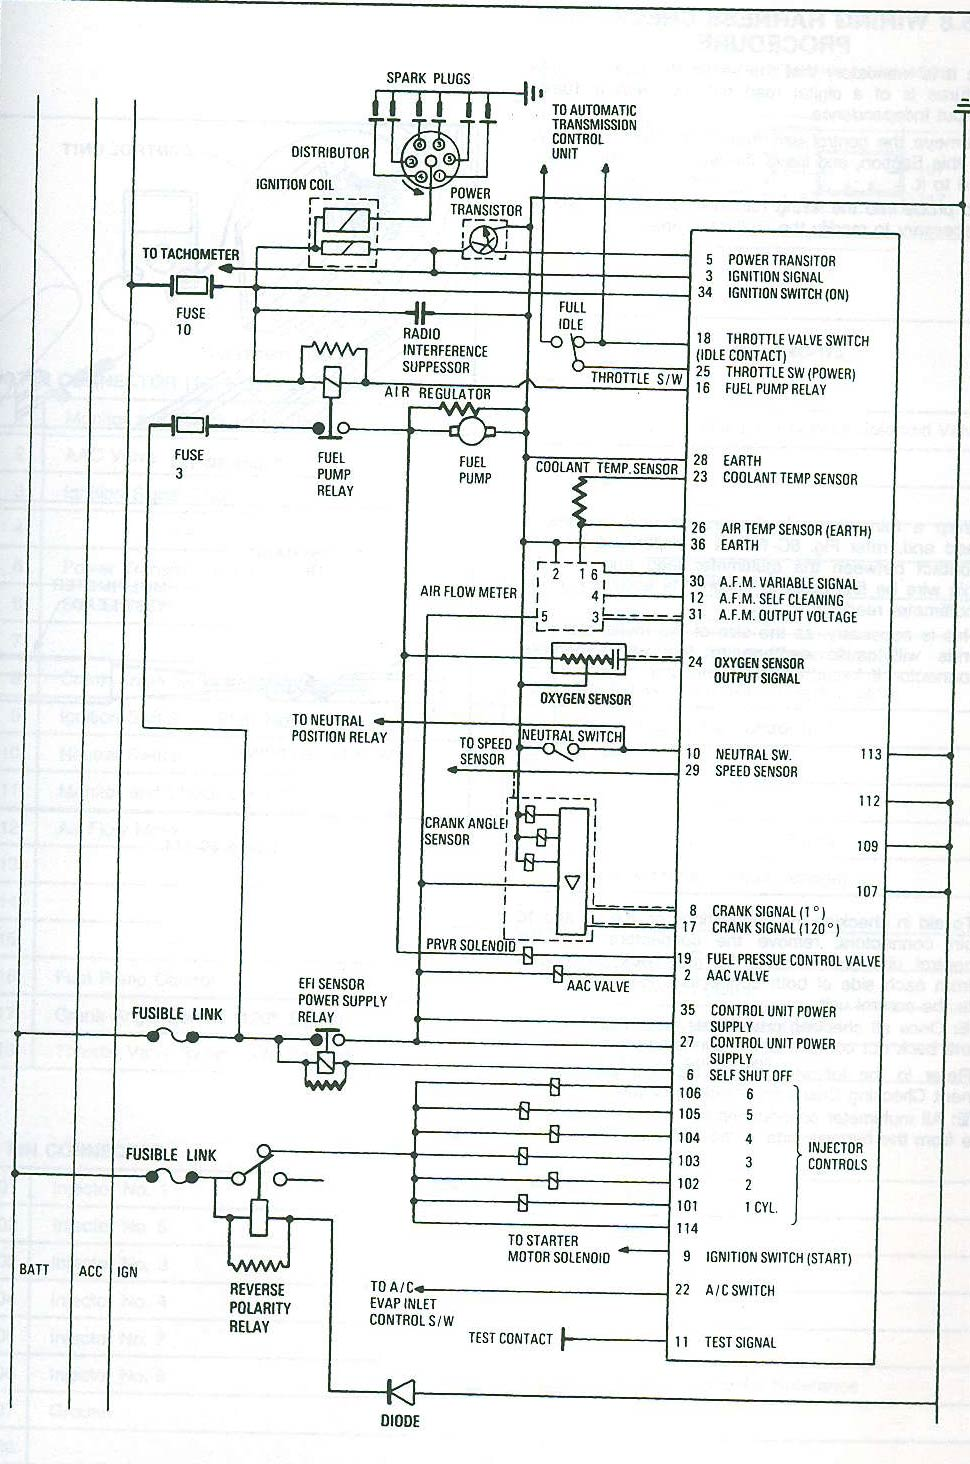 hight resolution of nissan patrol wiring diagram gq wiring diagram sort nissan patrol headlight wiring diagram nissan patrol wiring diagram